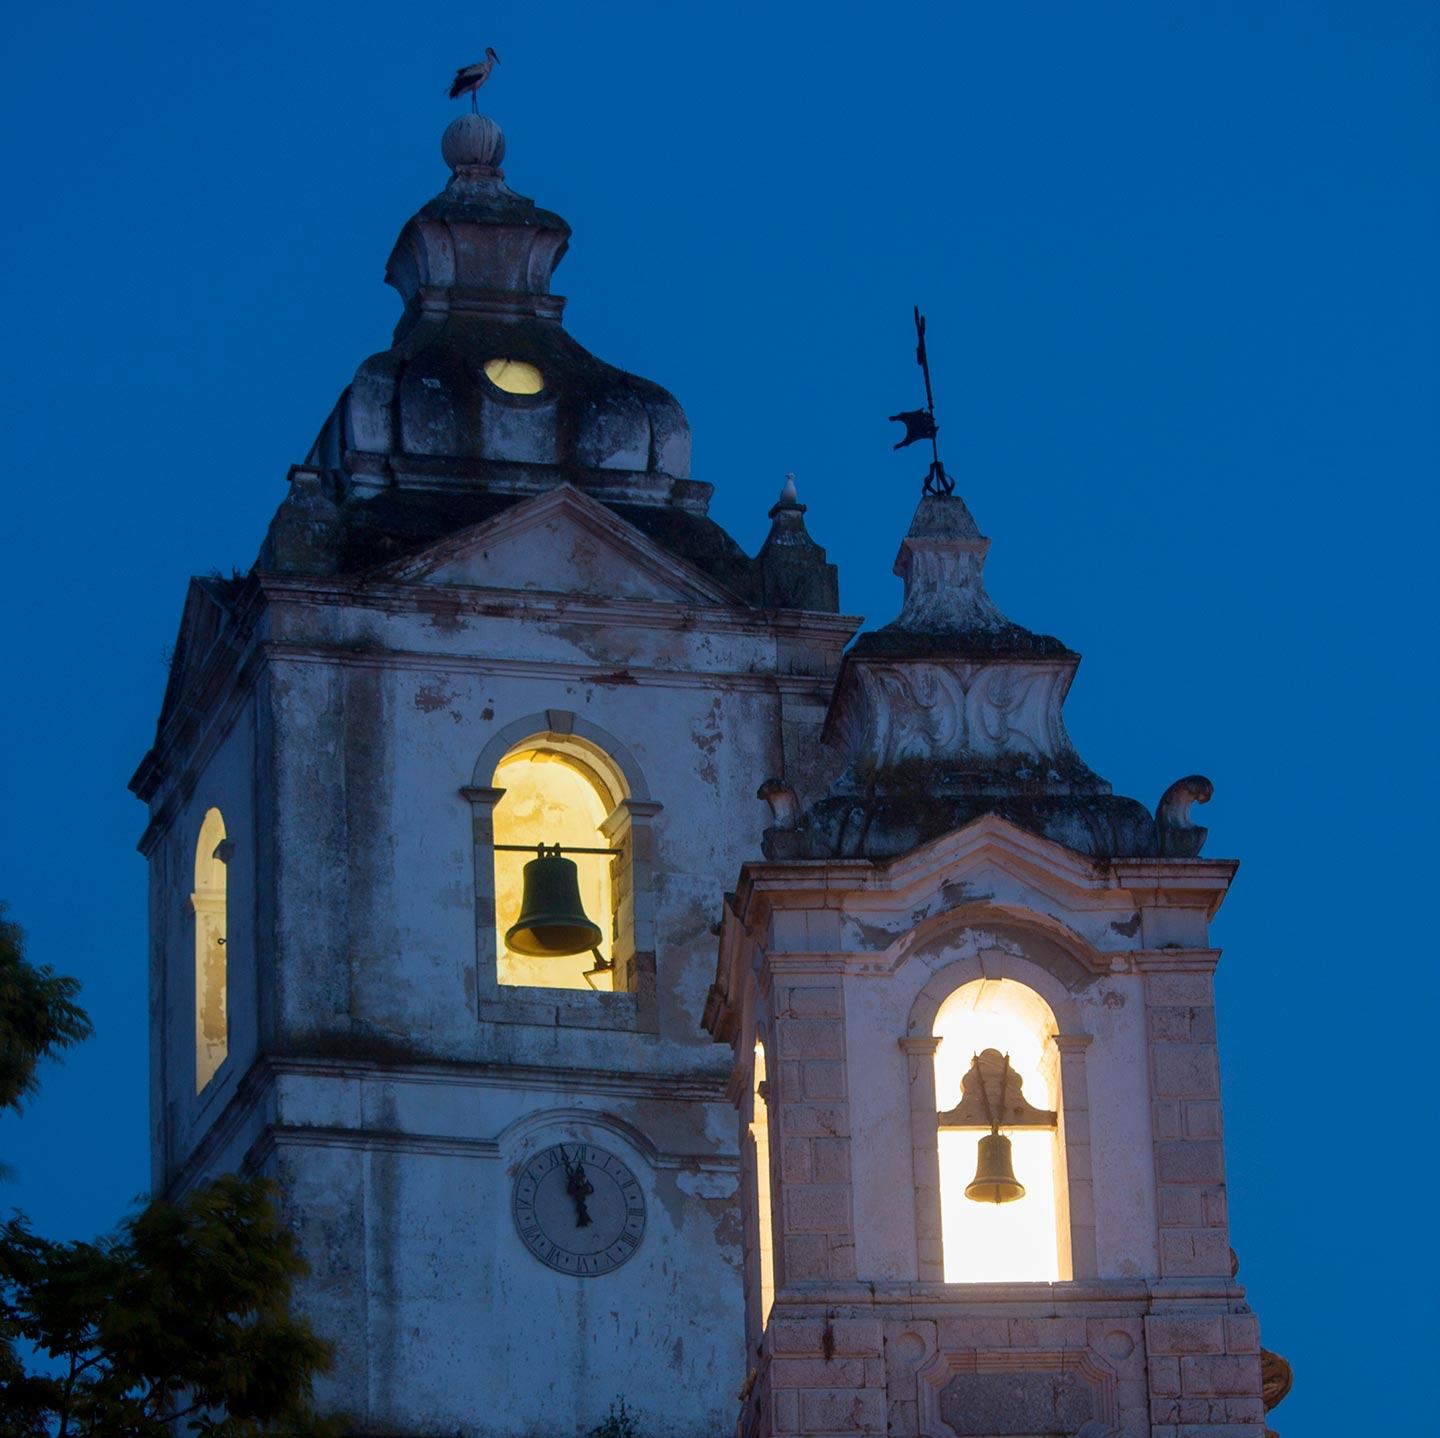 Image of the towers of Igreja de Santo Antonio in Lagos at night